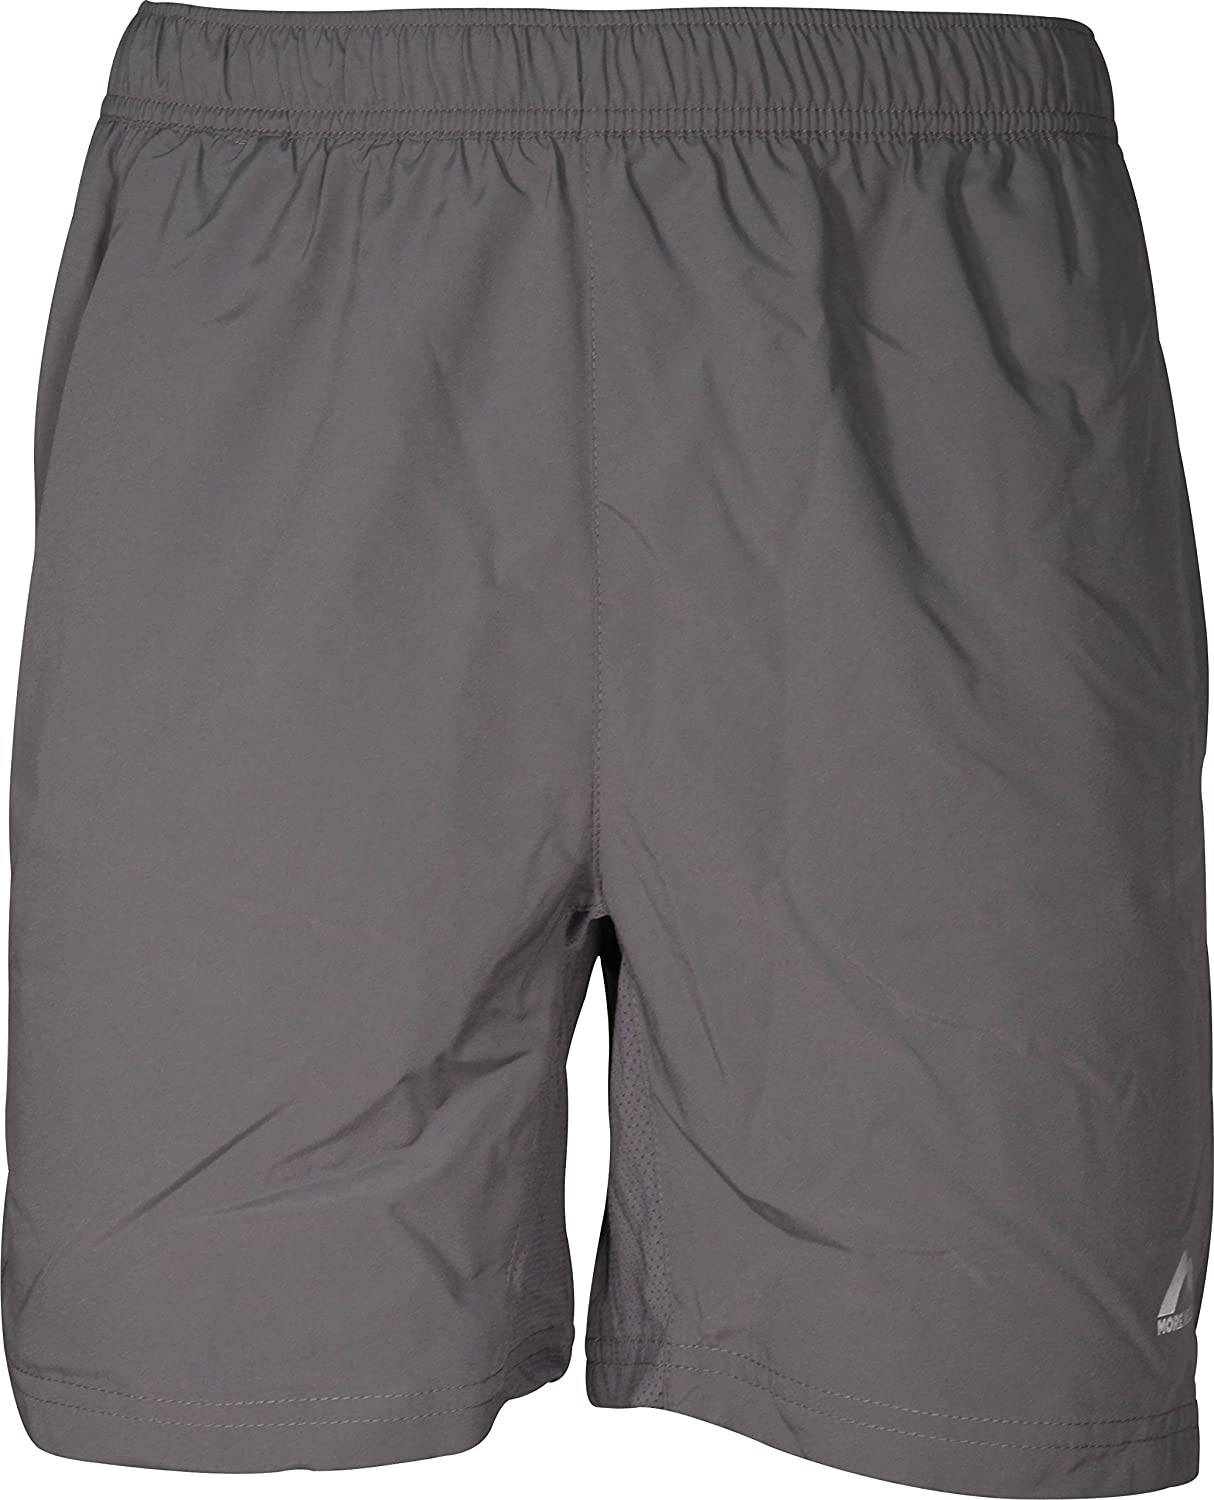 More Mile Aspire 5 Inch Mens Running Shorts Grey Gym Sports Training Workout